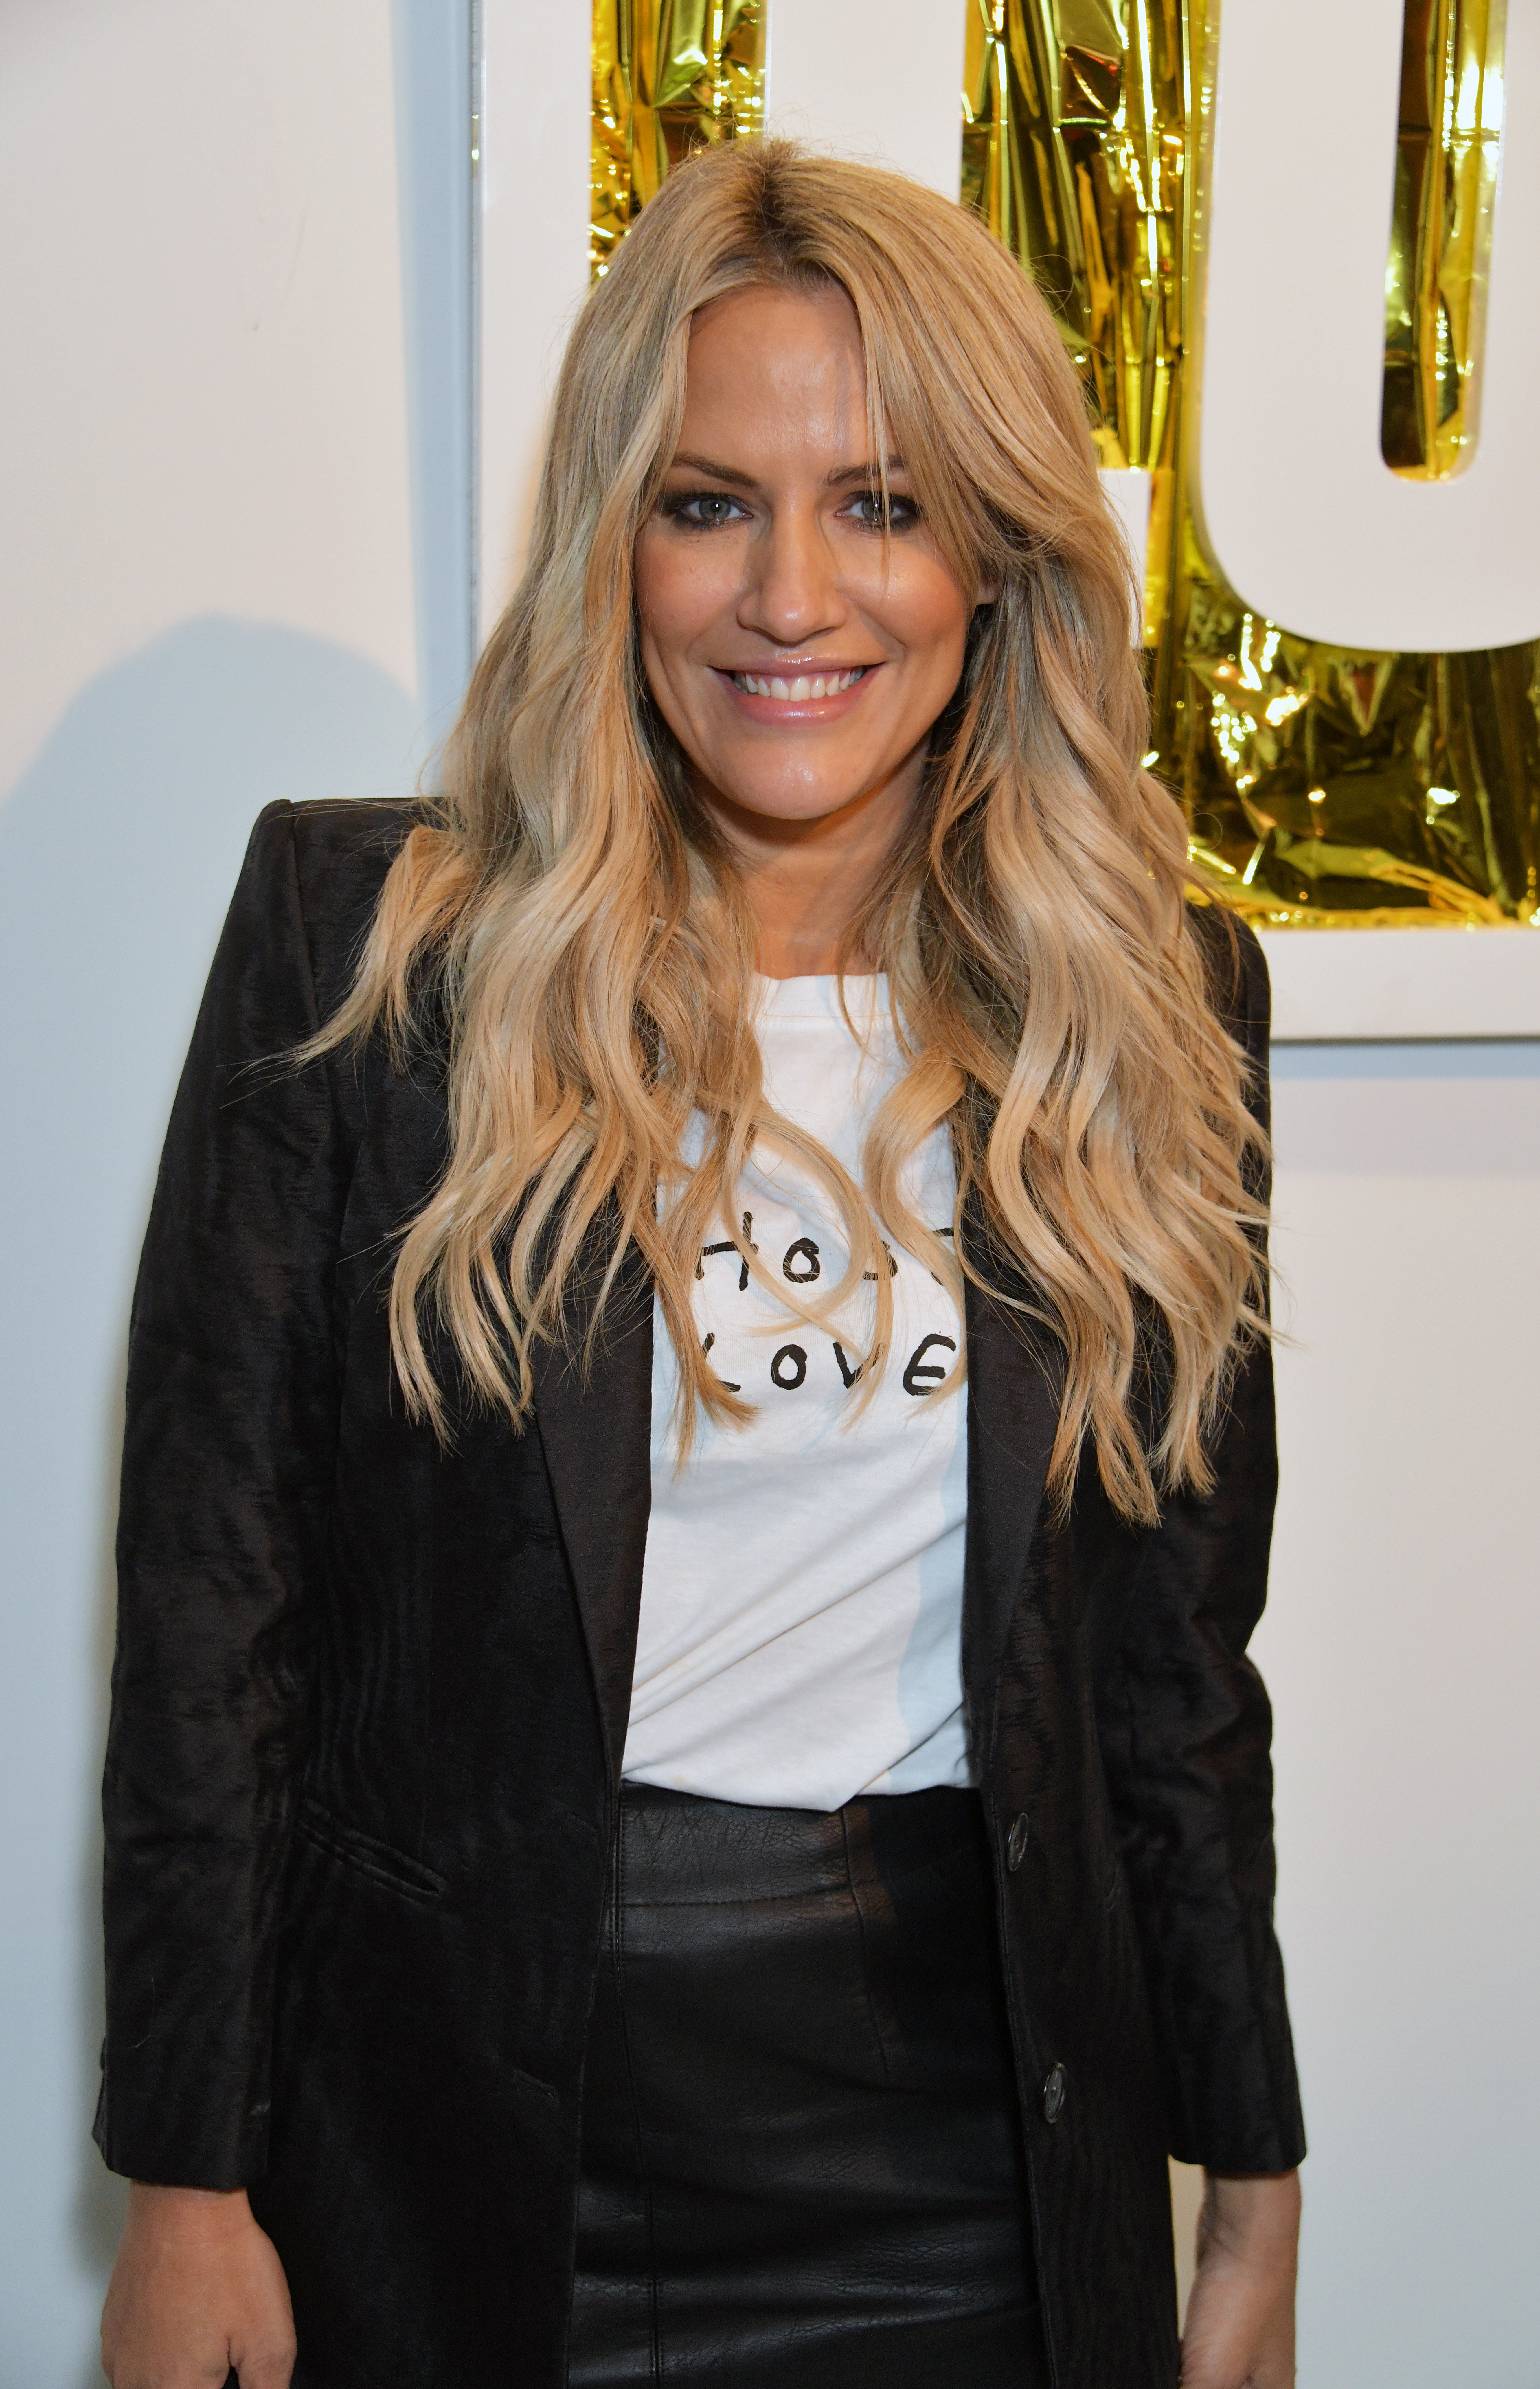 Caroline Flack at the launch of the Choose Love LFW Collection hosted by Help Refugees during London Fashion Week September 2019 in London, England | Photo: Getty Images